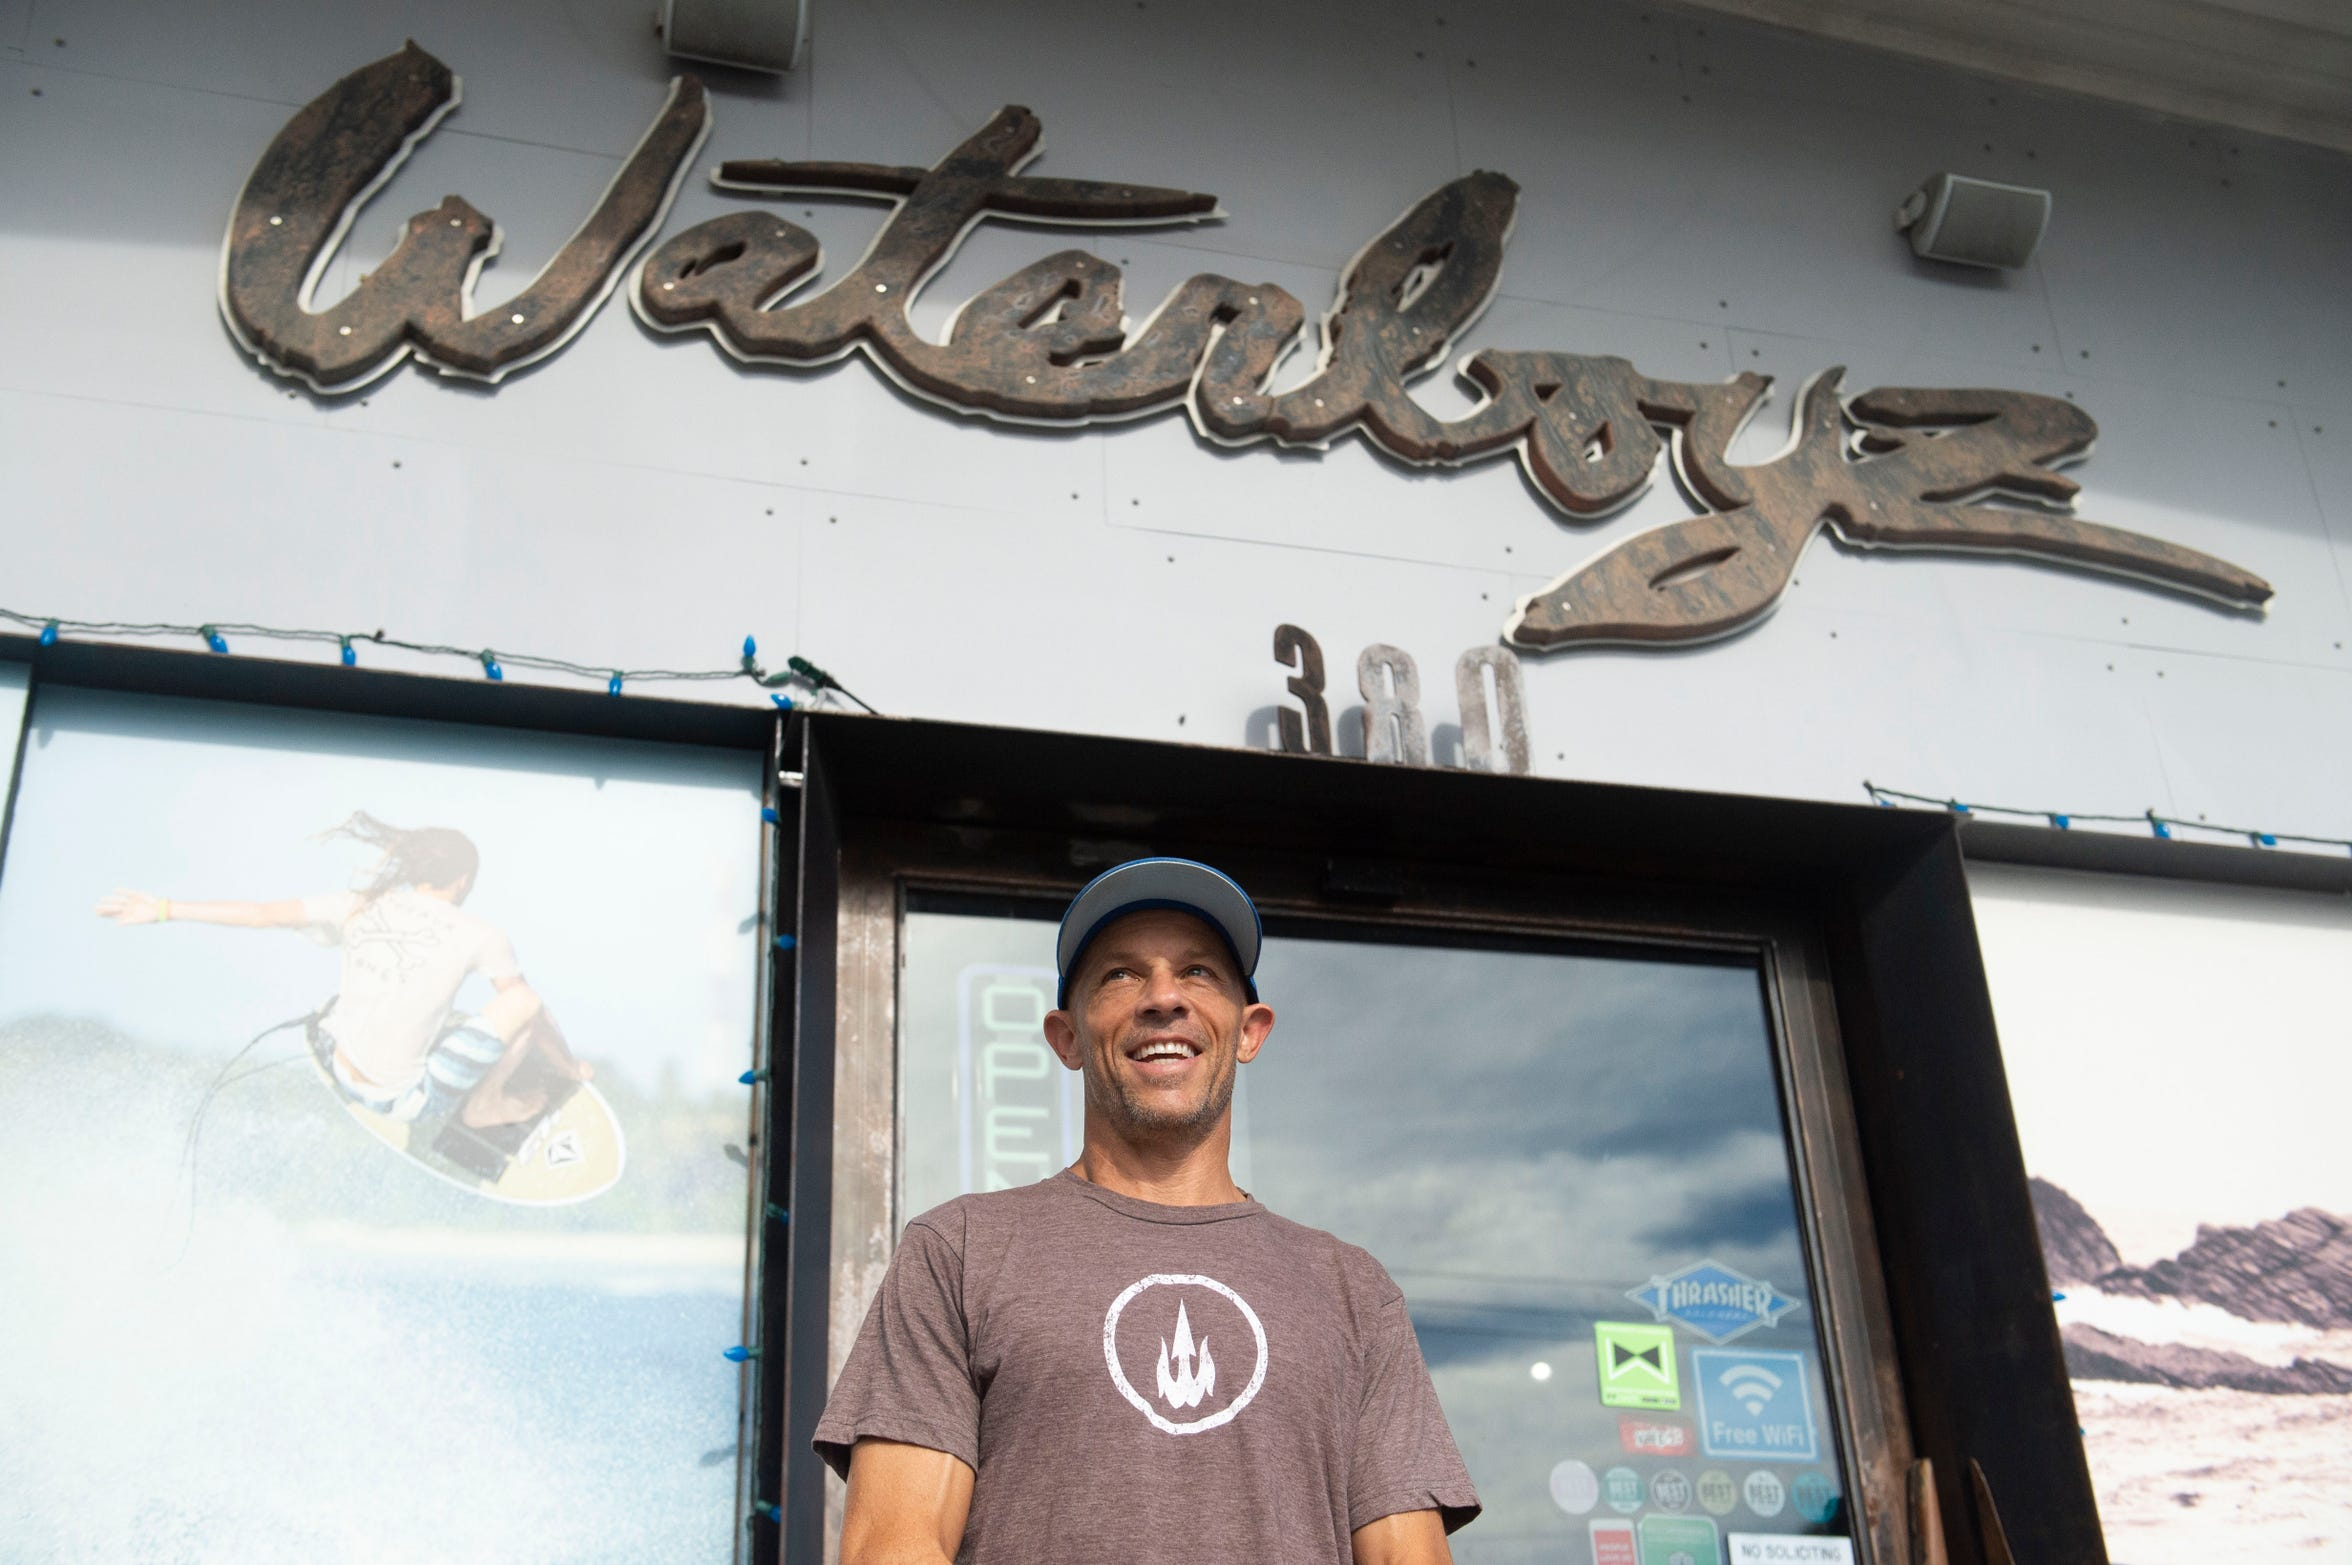 """I started this business in 1989, but it wasn't like this,"" said Waterboyz owner Sean Fell, 51, of Gulf Breeze, about the massive indoor shop, restaurant and skate park he owns in Pensacola. Initially, Fell began making surfboards in a laundry closet and the business expanded over time. ""It just grew and grew, it was totally non-intentional. I just didn't quit. I just didn't give up,"" he said."